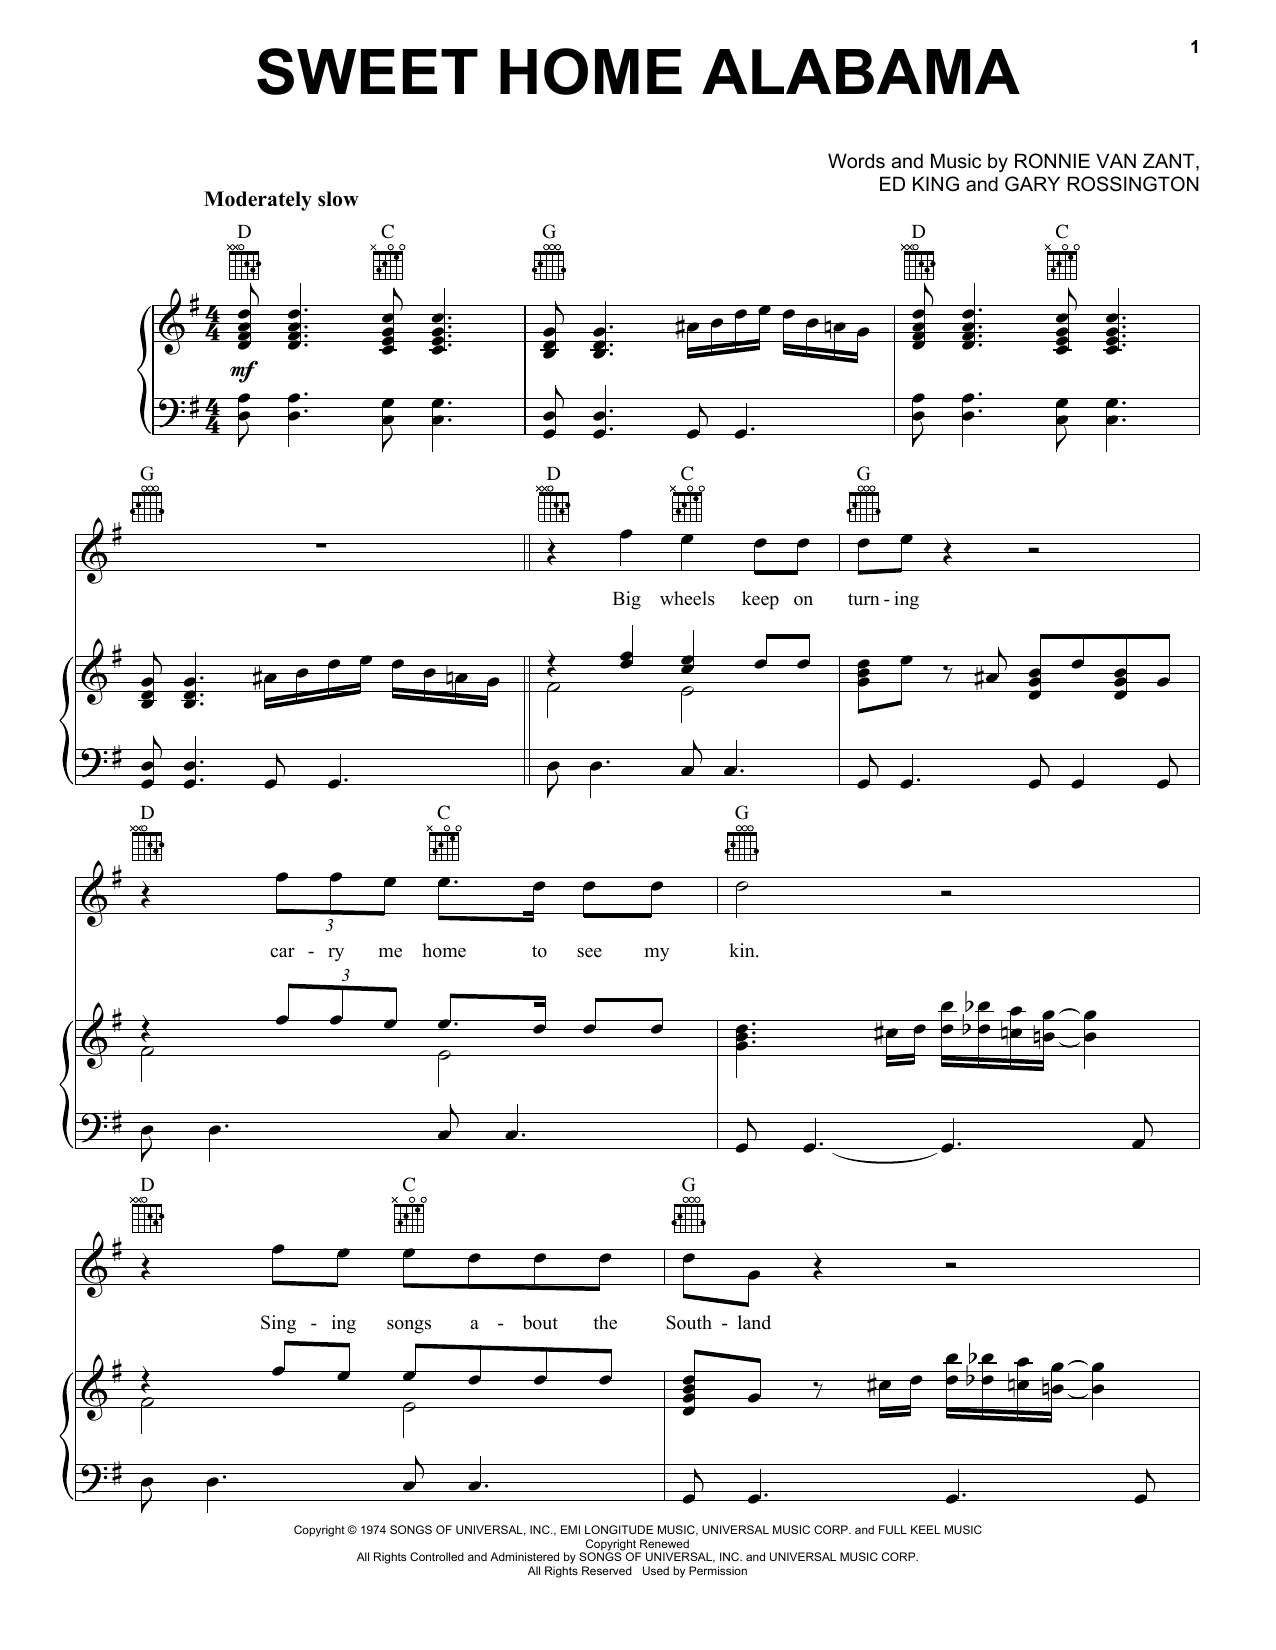 Apr 10, 2012· ukulele chords and tabs for sweet home alabama by lynyrd skynyrd. Lynyrd Skynyrd Sweet Home Alabama Sheet Music Notes Chords Melody Line Lyrics Chords Download Rock 32464 Pdf